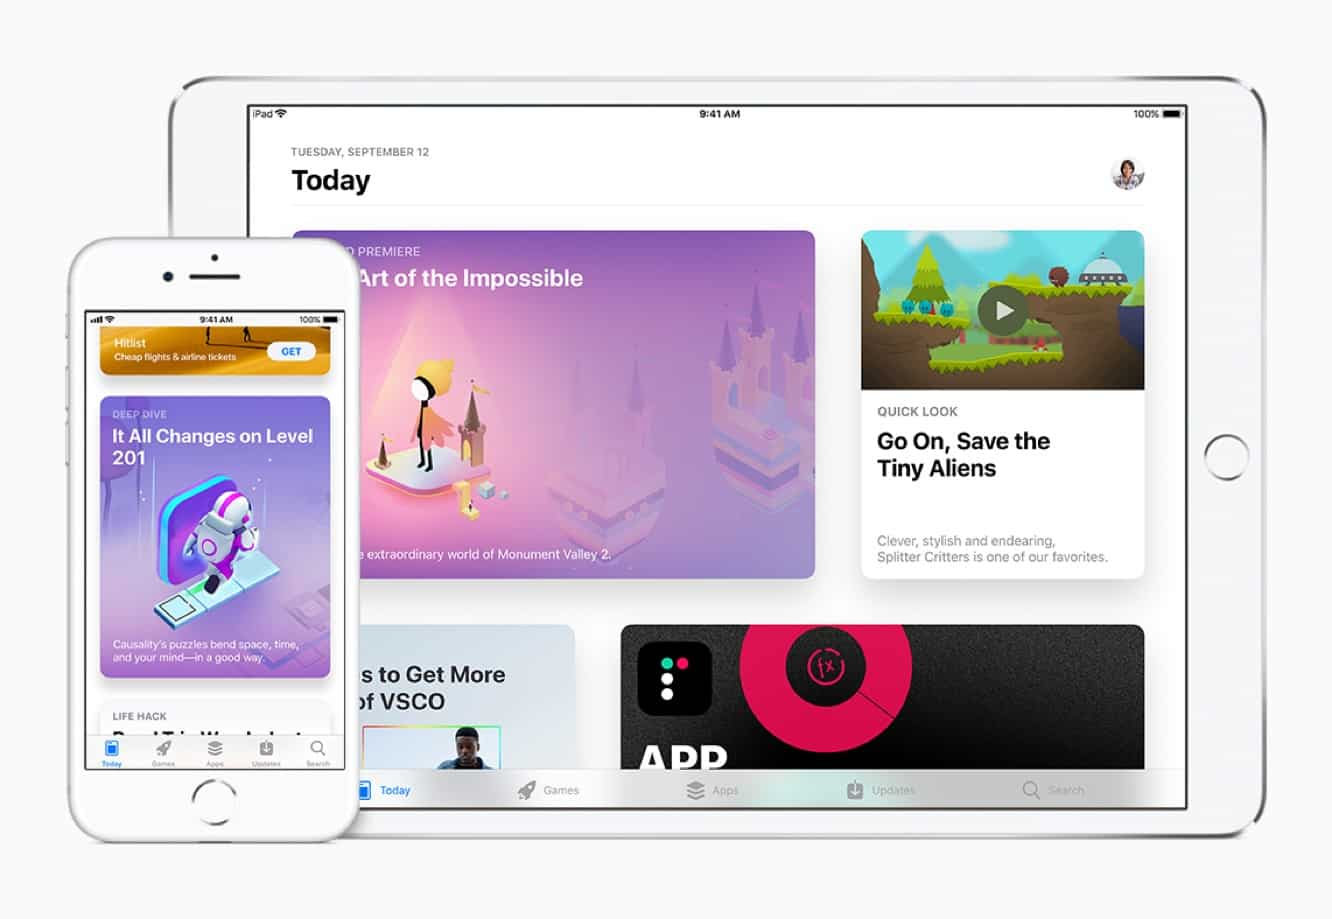 Apple releases iOS 11 with improvements to HomeKit, new App Store, updates to Camera, Siri and more